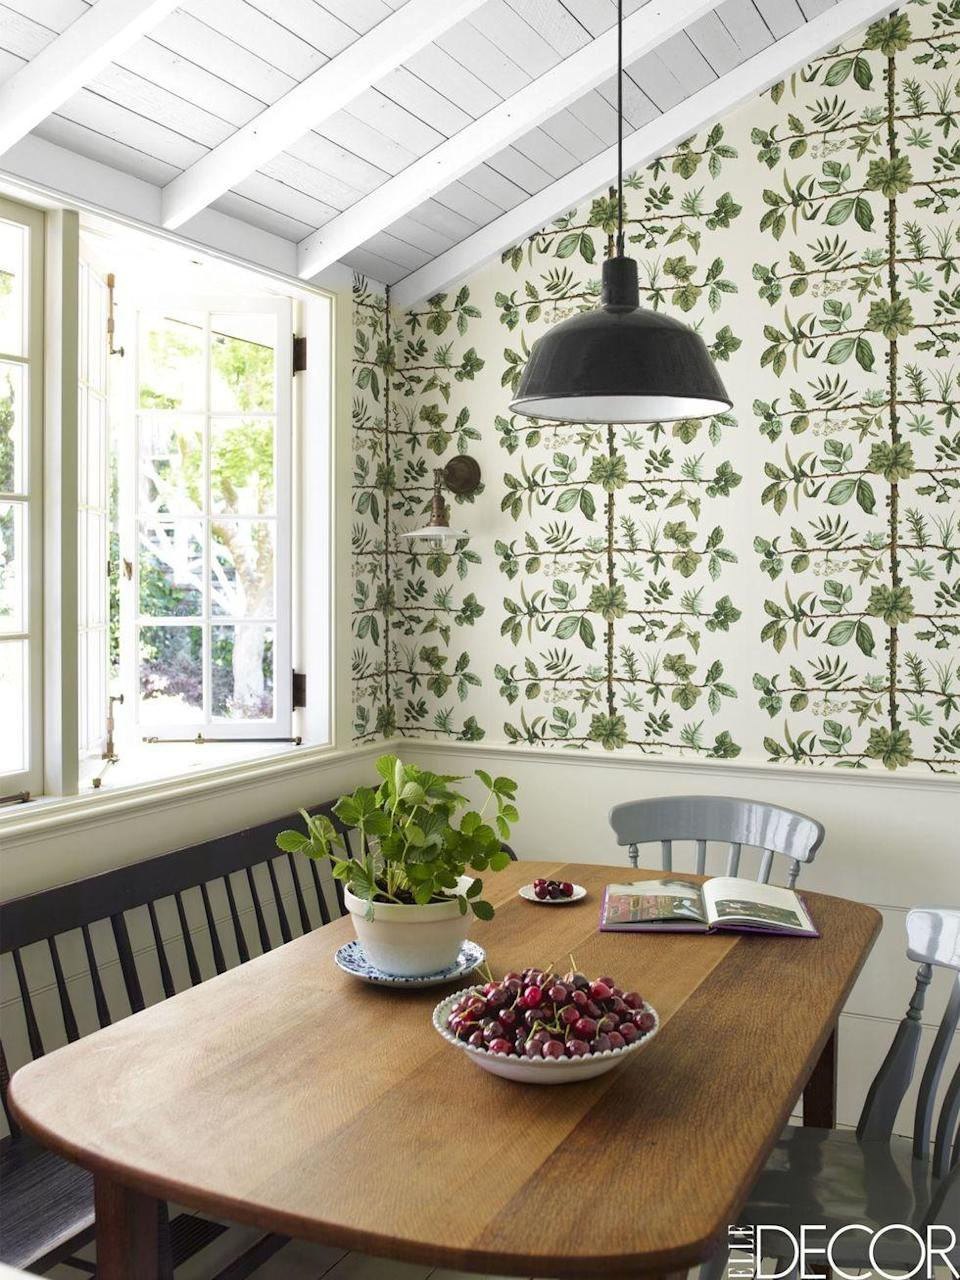 """<p>In typical California fashion, this <a href=""""https://www.elledecor.com/design-decorate/house-interiors/a8326/northern-california-home/"""" rel=""""nofollow noopener"""" target=""""_blank"""" data-ylk=""""slk:Mill Valley home"""" class=""""link rapid-noclick-resp"""">Mill Valley home</a> is nature-inspired from the color palette to the decor. The kitchen features a gorgeous leafy wallpaper design by Pierre Frey, accented by some real greenery on the dining table.</p><p><em>Mais-Green Leaf on White-Corn Printed Wallpaper, $300</em><br><a class=""""link rapid-noclick-resp"""" href=""""https://go.redirectingat.com?id=74968X1596630&url=https%3A%2F%2Fwww.1stdibs.com%2Ffurniture%2Fwall-decorations%2Fwallpaper%2Fmais-green-leaf-on-white-corn-printed-wallpaper%2Fid-f_12025883%2F%3Fgclid%3DCjwKCAjw8NfrBRA7EiwAfiVJpSEik8oszFeC_875EIR90nwDUzglKhcAoxMMwnEEkl4WCHSDswktKhoCHDAQAvD_BwE%26gclsrc%3Daw.ds&sref=https%3A%2F%2Fwww.redbookmag.com%2Fhome%2Fg35083191%2Fwallpaper-design-ideas%2F"""" rel=""""nofollow noopener"""" target=""""_blank"""" data-ylk=""""slk:Shop the Look"""">Shop the Look</a></p>"""